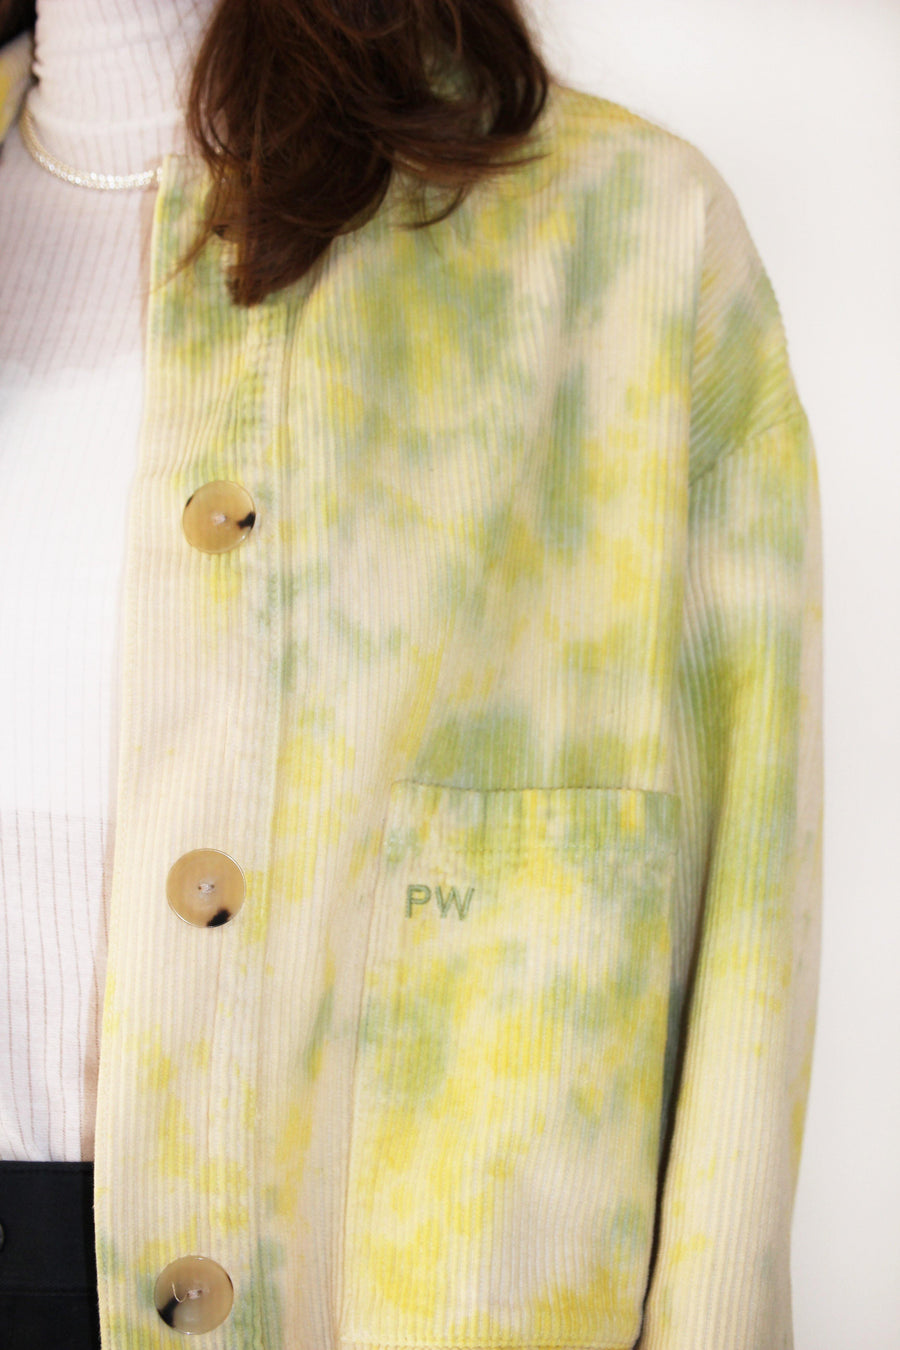 PALOMA WOOL jacket - The Good Store Berlin